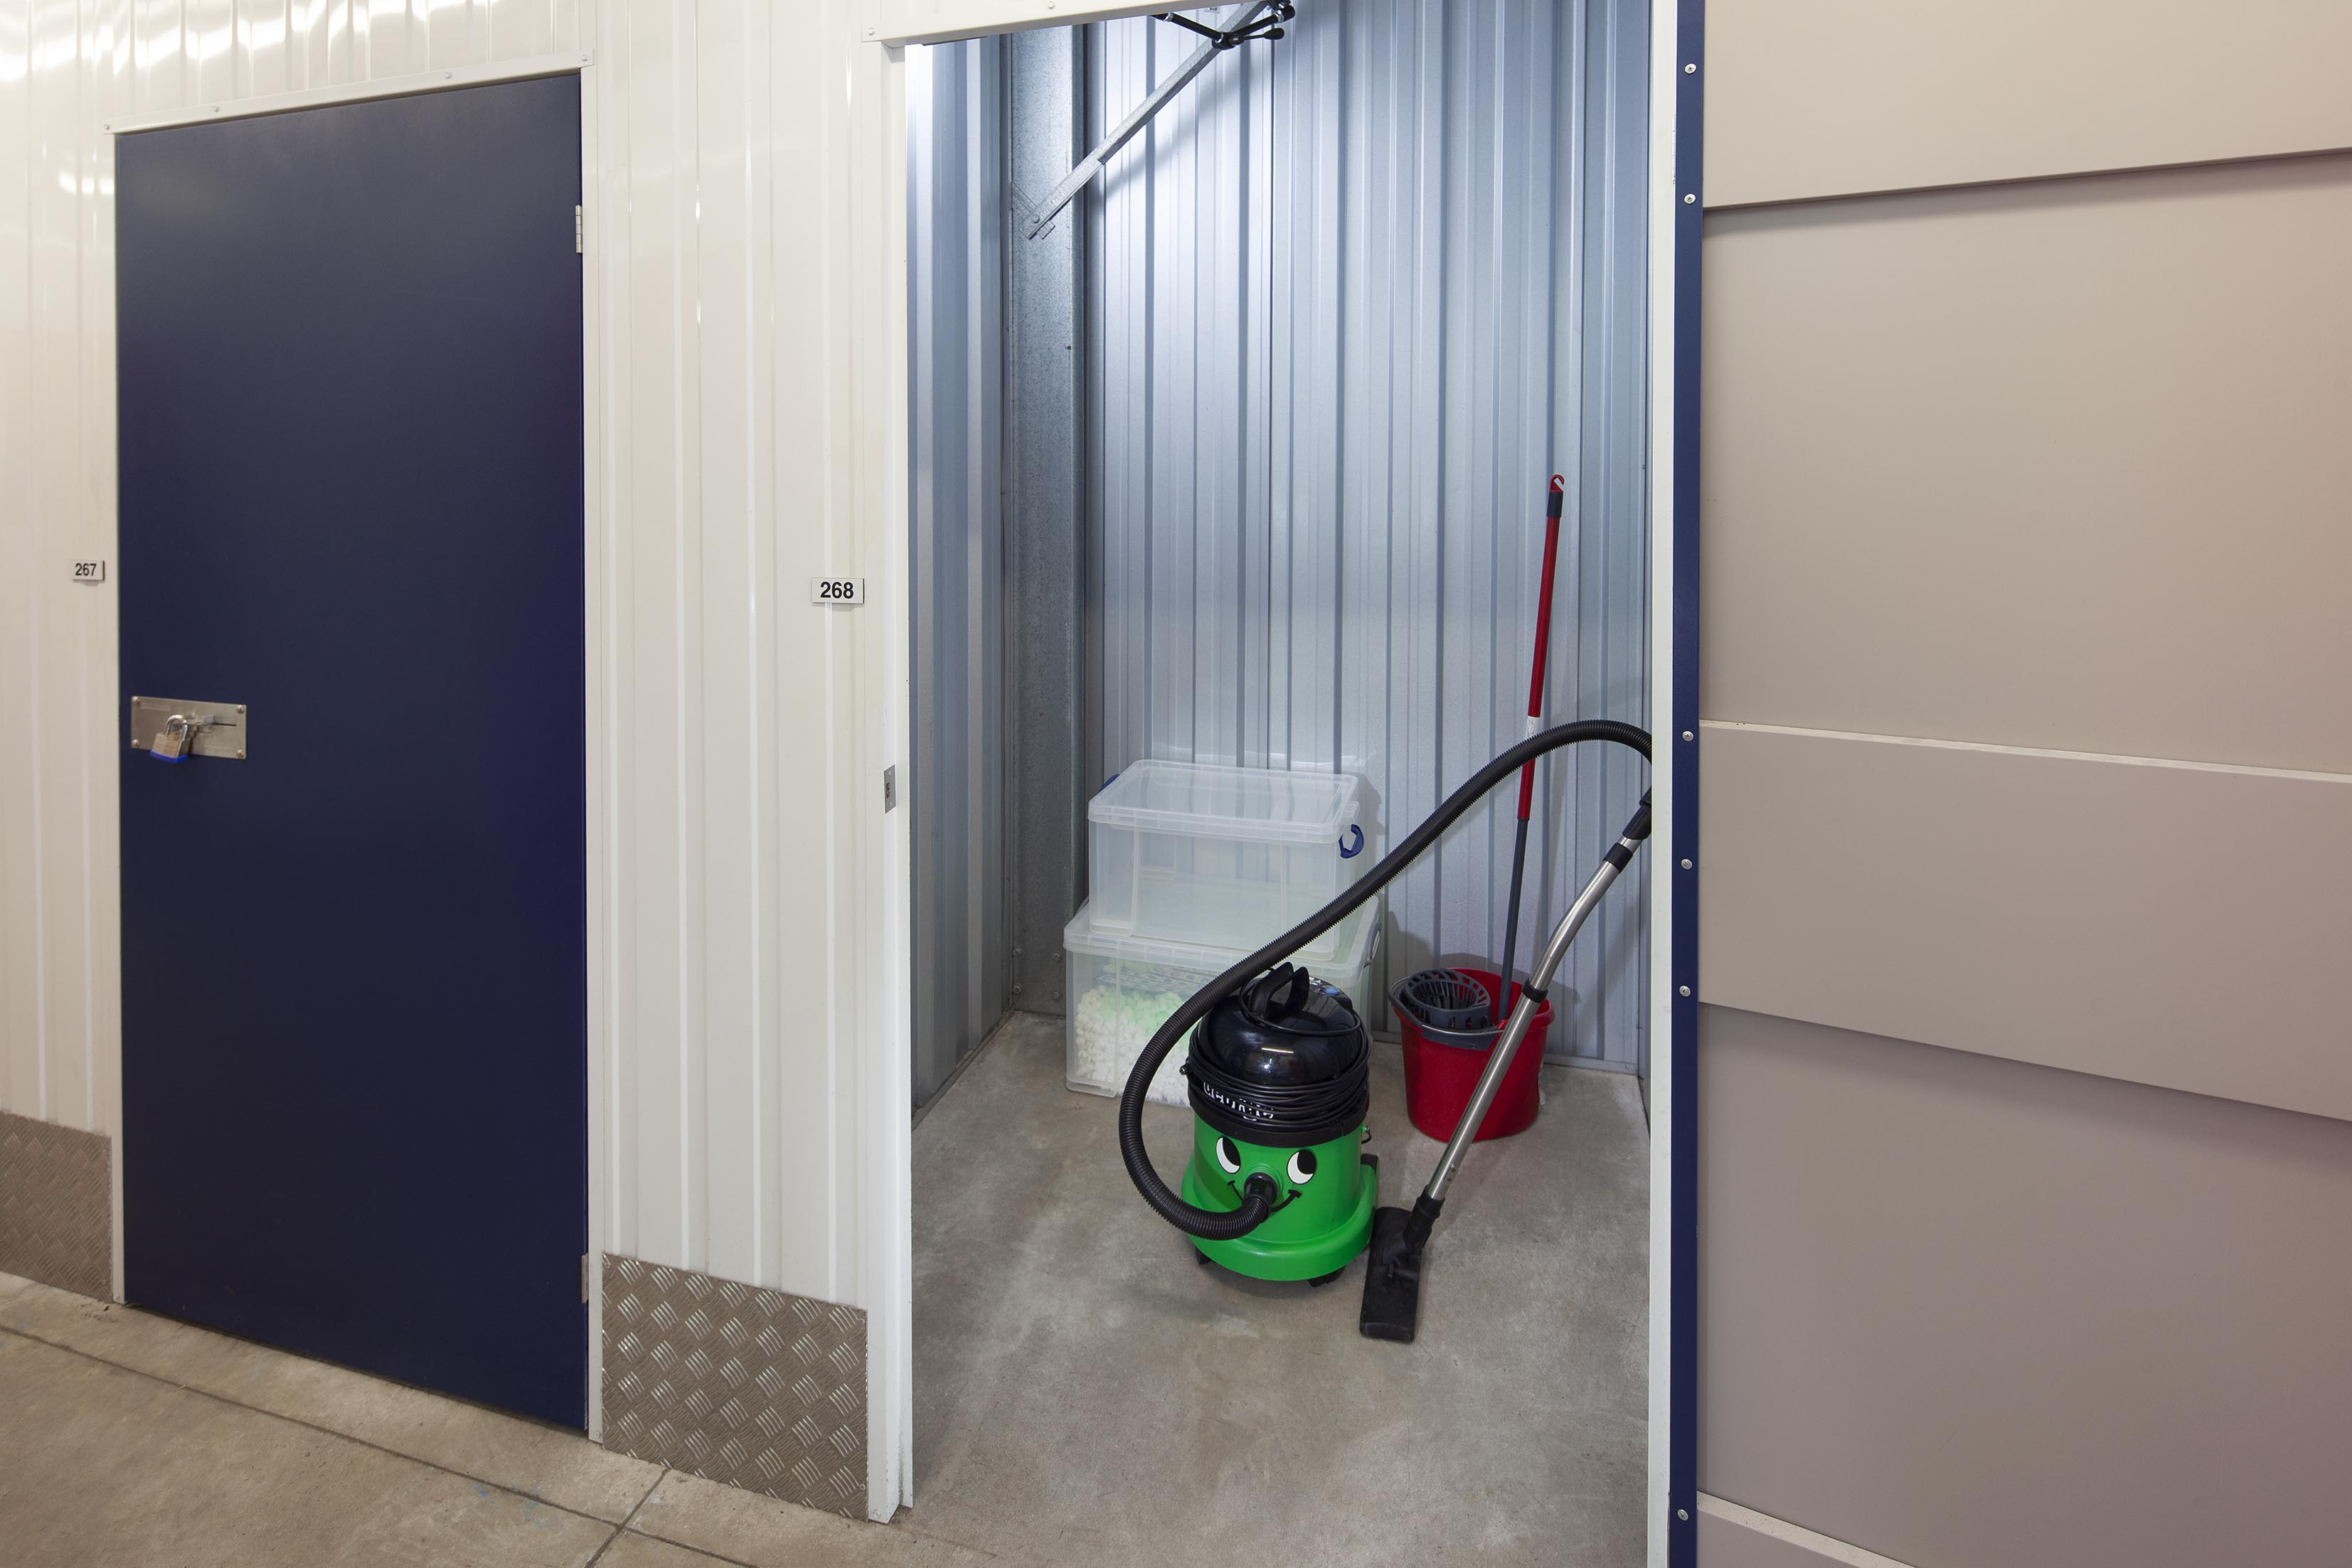 25 sqft storage unit with a hoover and boxes inside of it.